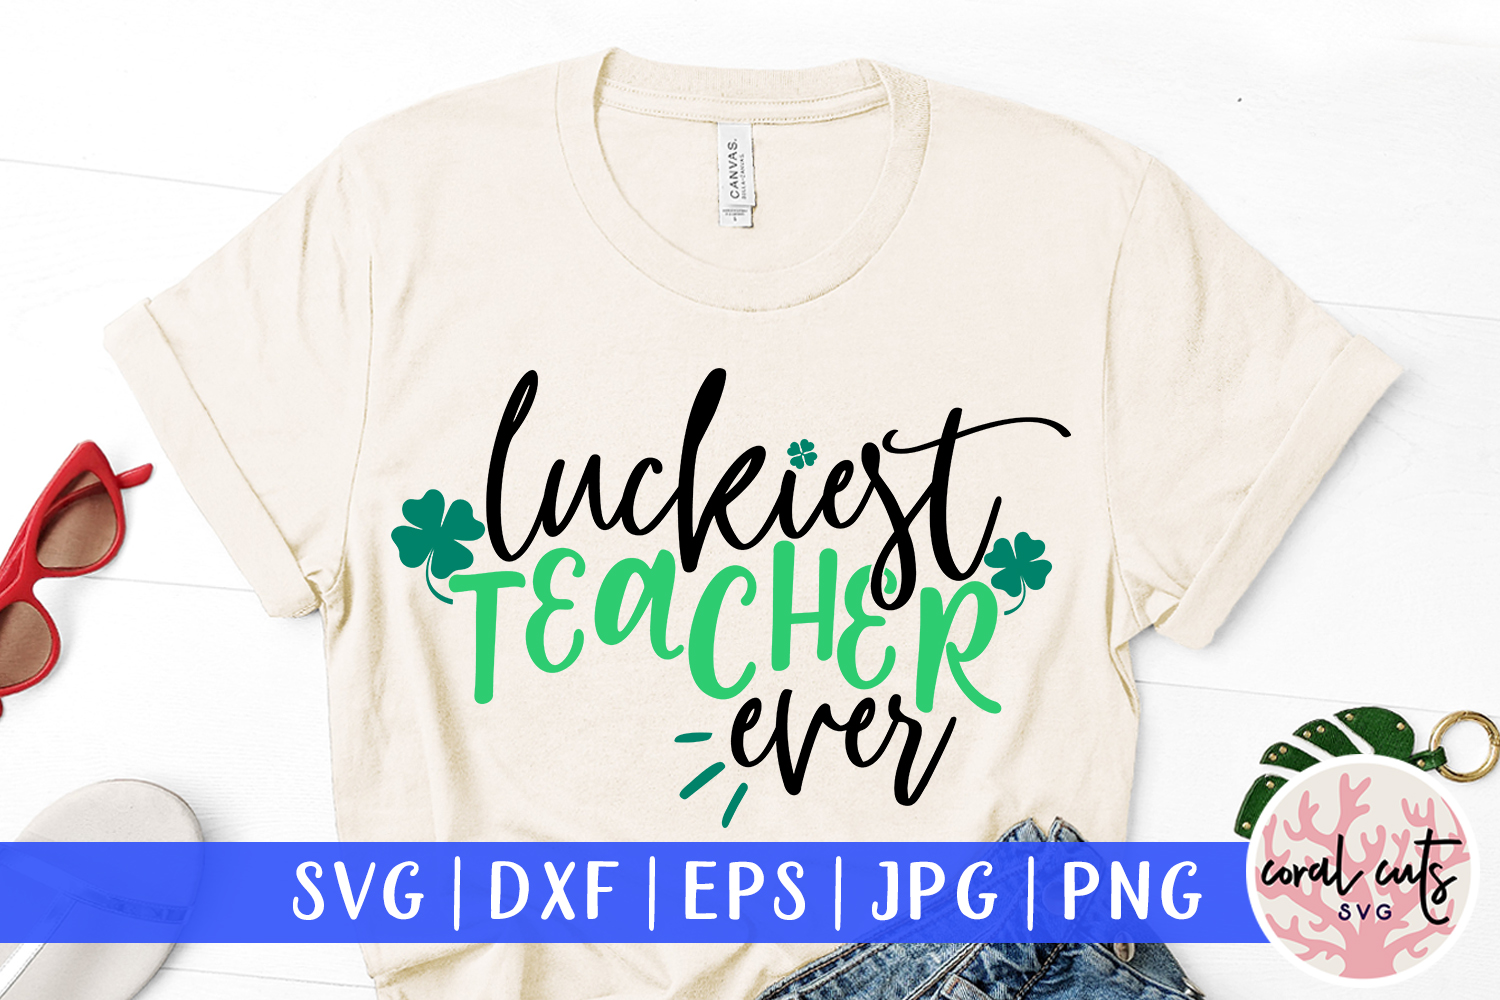 Luckiest teacher ever - St. Patrick's Day SVG EPS DXF PNG example image 1